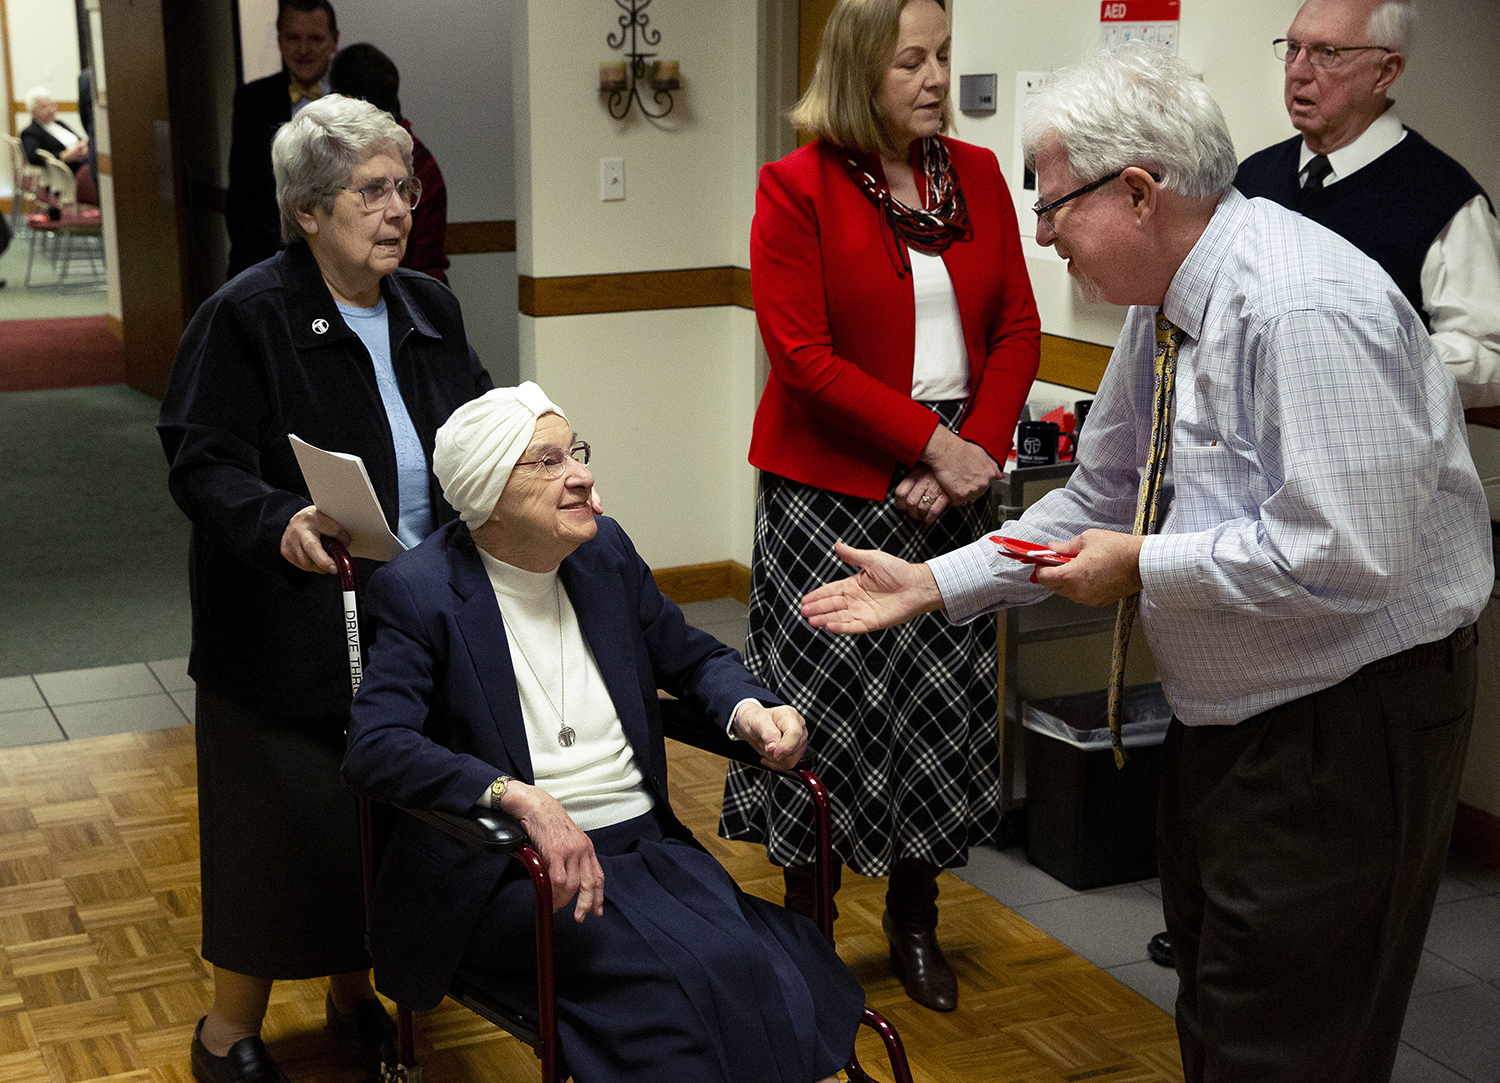 Peter Manix greets Sister Marianna Kosior, OSF, during a reception marking the 40th anniversary of the creation of the Hospital Sisters Health System Tuesday, Jan. 22, 2019 at the HSHS corporate office in Springfield, Ill. Kosior was the first president and CEO of HSHS and guided the creation of the corporation that operates HSHS St. John's Hospital, and 14 others in Illinois and Wisconsin. Of the five sisters who created the corporation, four of them attended the reception, including Sister Jomary Trstensky, who is behind Kosior. [Rich Saal/The State Journal-Register]